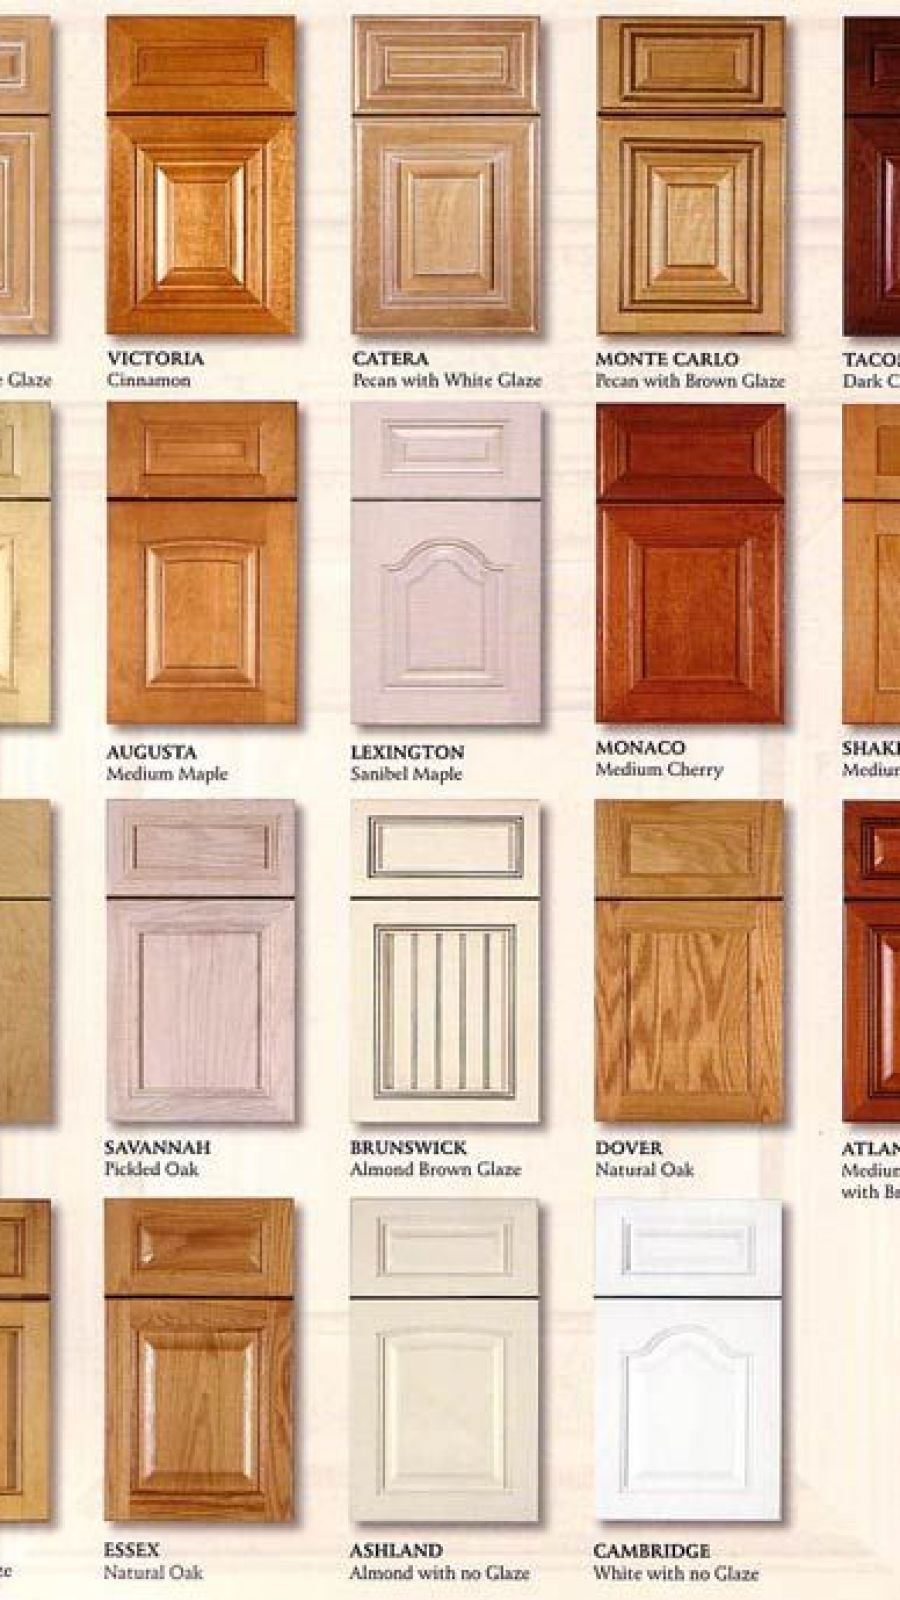 Kitchen Cabinet Door Styles In 2020 Types Of Kitchen Cabinets Kitchen Cabinet Door Styles Kitchen Cabinet Styles